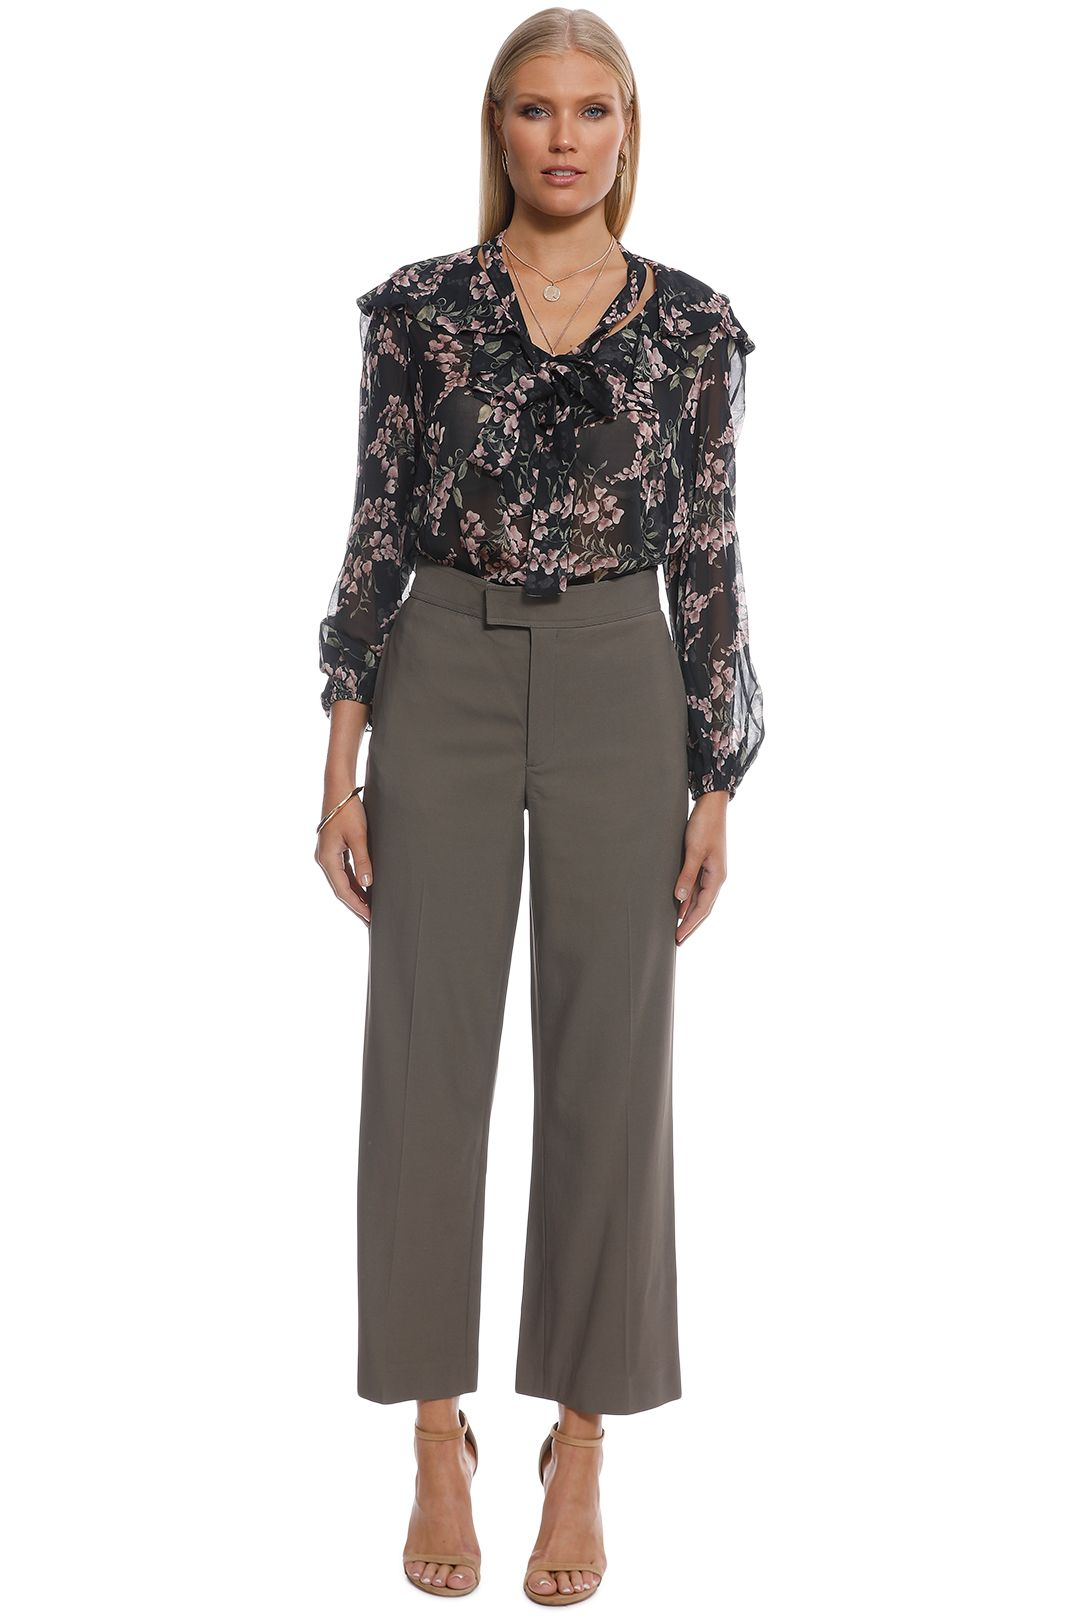 Scanlan Theodore - Crepe Tailored Trouser - Taupe - Front